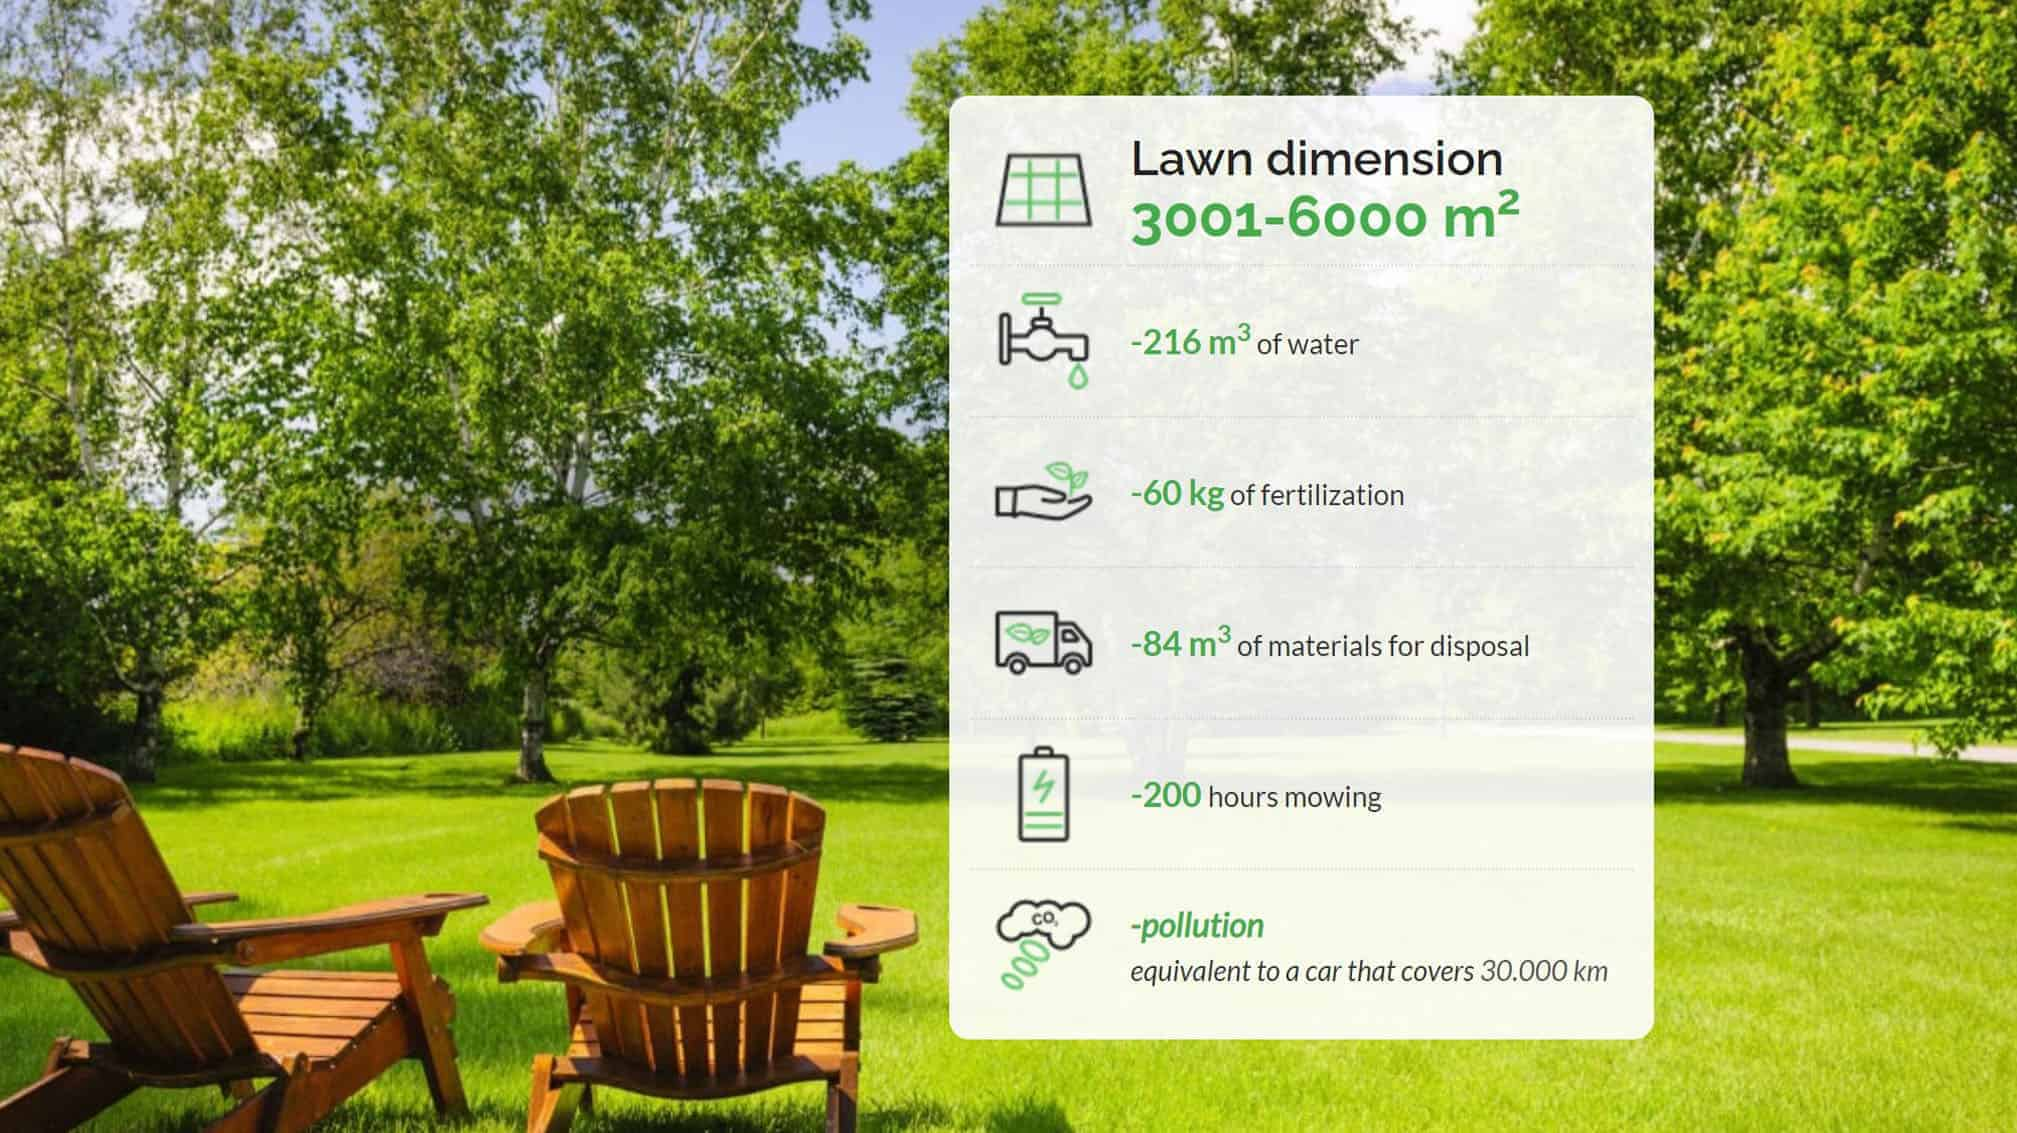 Annual saving by using a robotic mower in 3001-6000m2 lawn dimension-